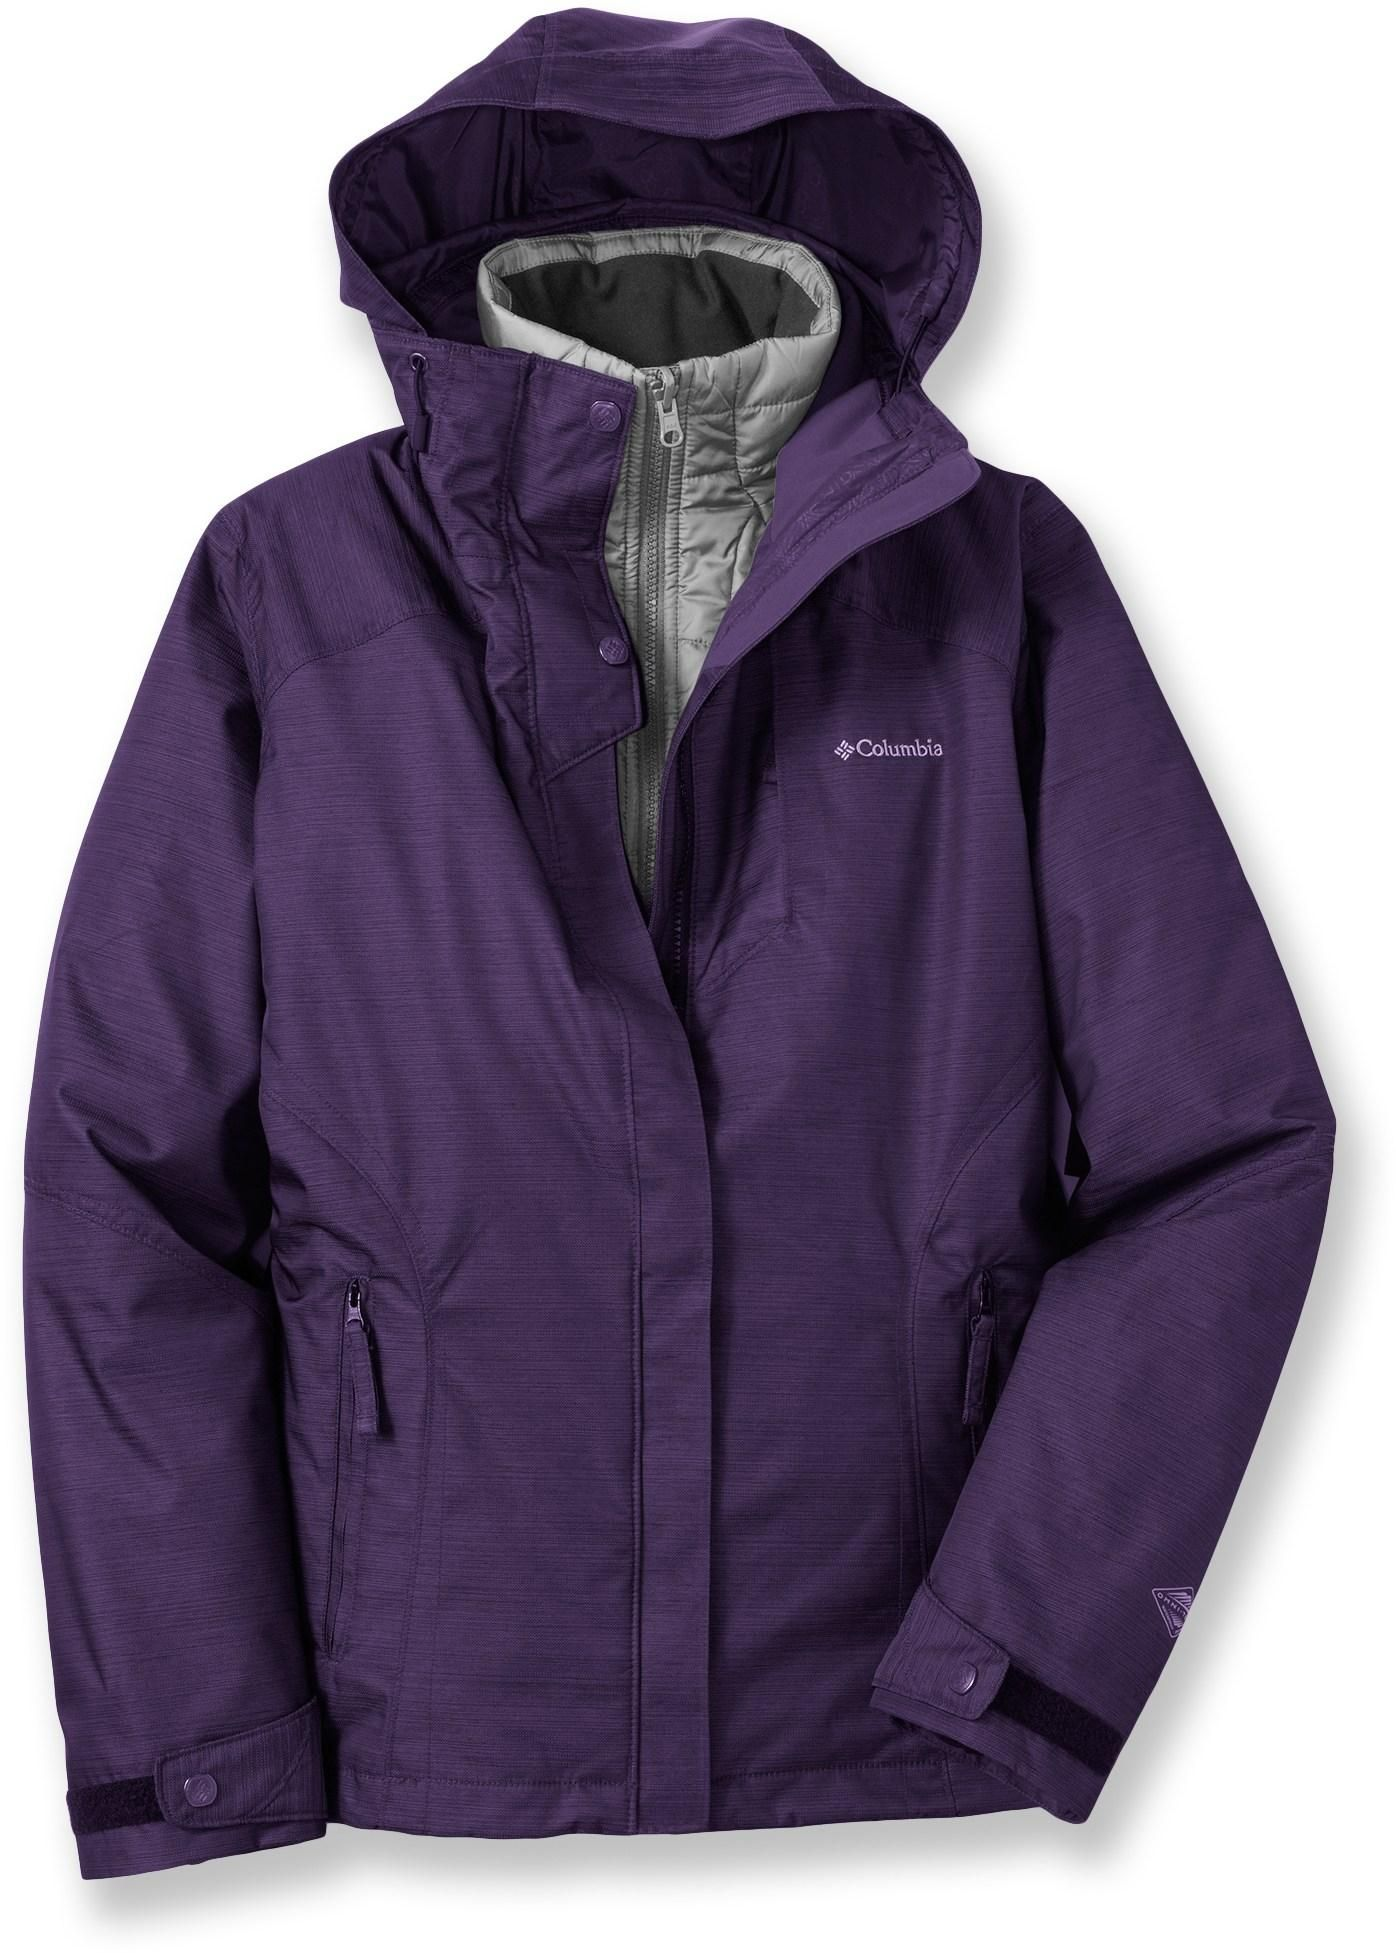 Columbia Alpine Alliance Interchange 3 In 1 Insulated Jacket Women S Rei Co Op Jackets For Women Jackets Outdoor Workout Outfit